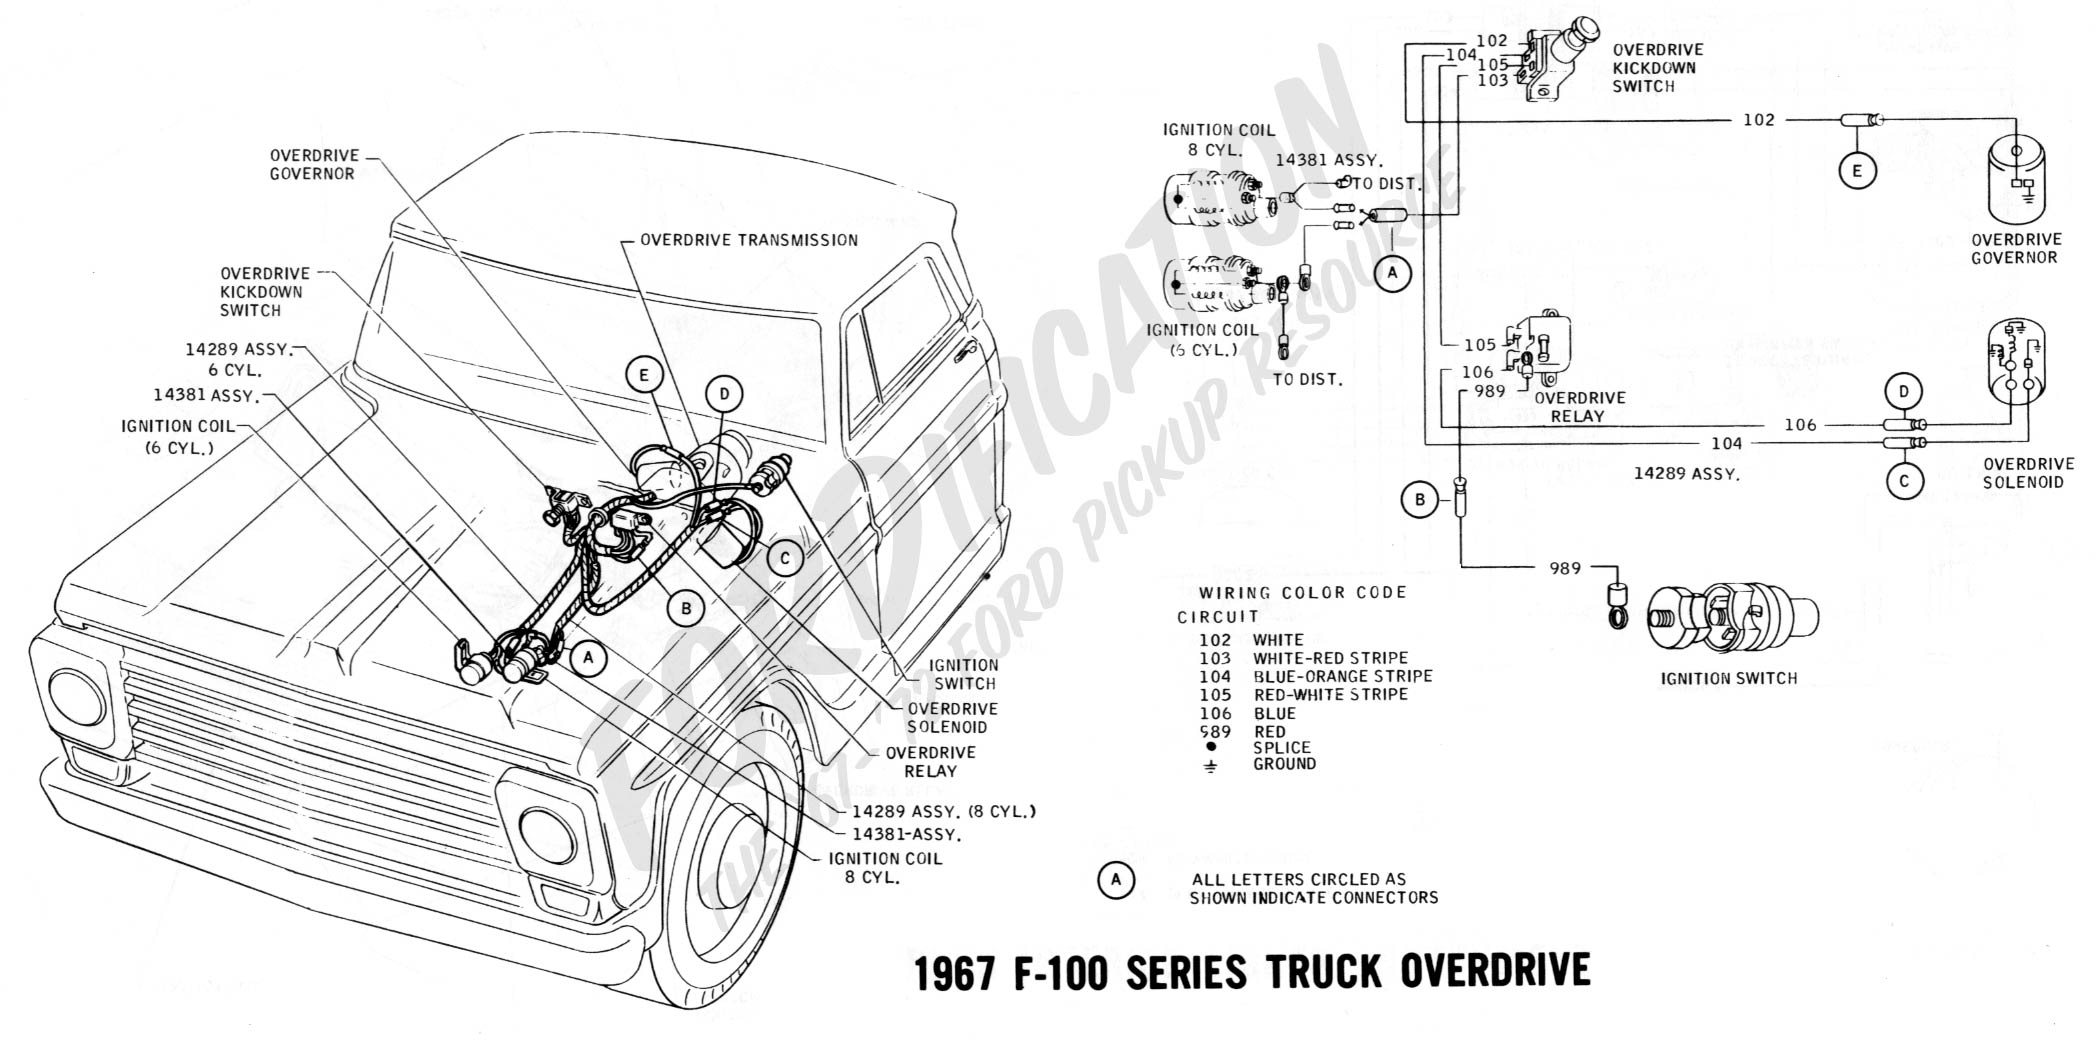 1969 Ford Light Switch Wiring Diagram 1967 Headlight Detailed Schematic Diagrams F100 Heater Product U2022 4 Wire Toggle